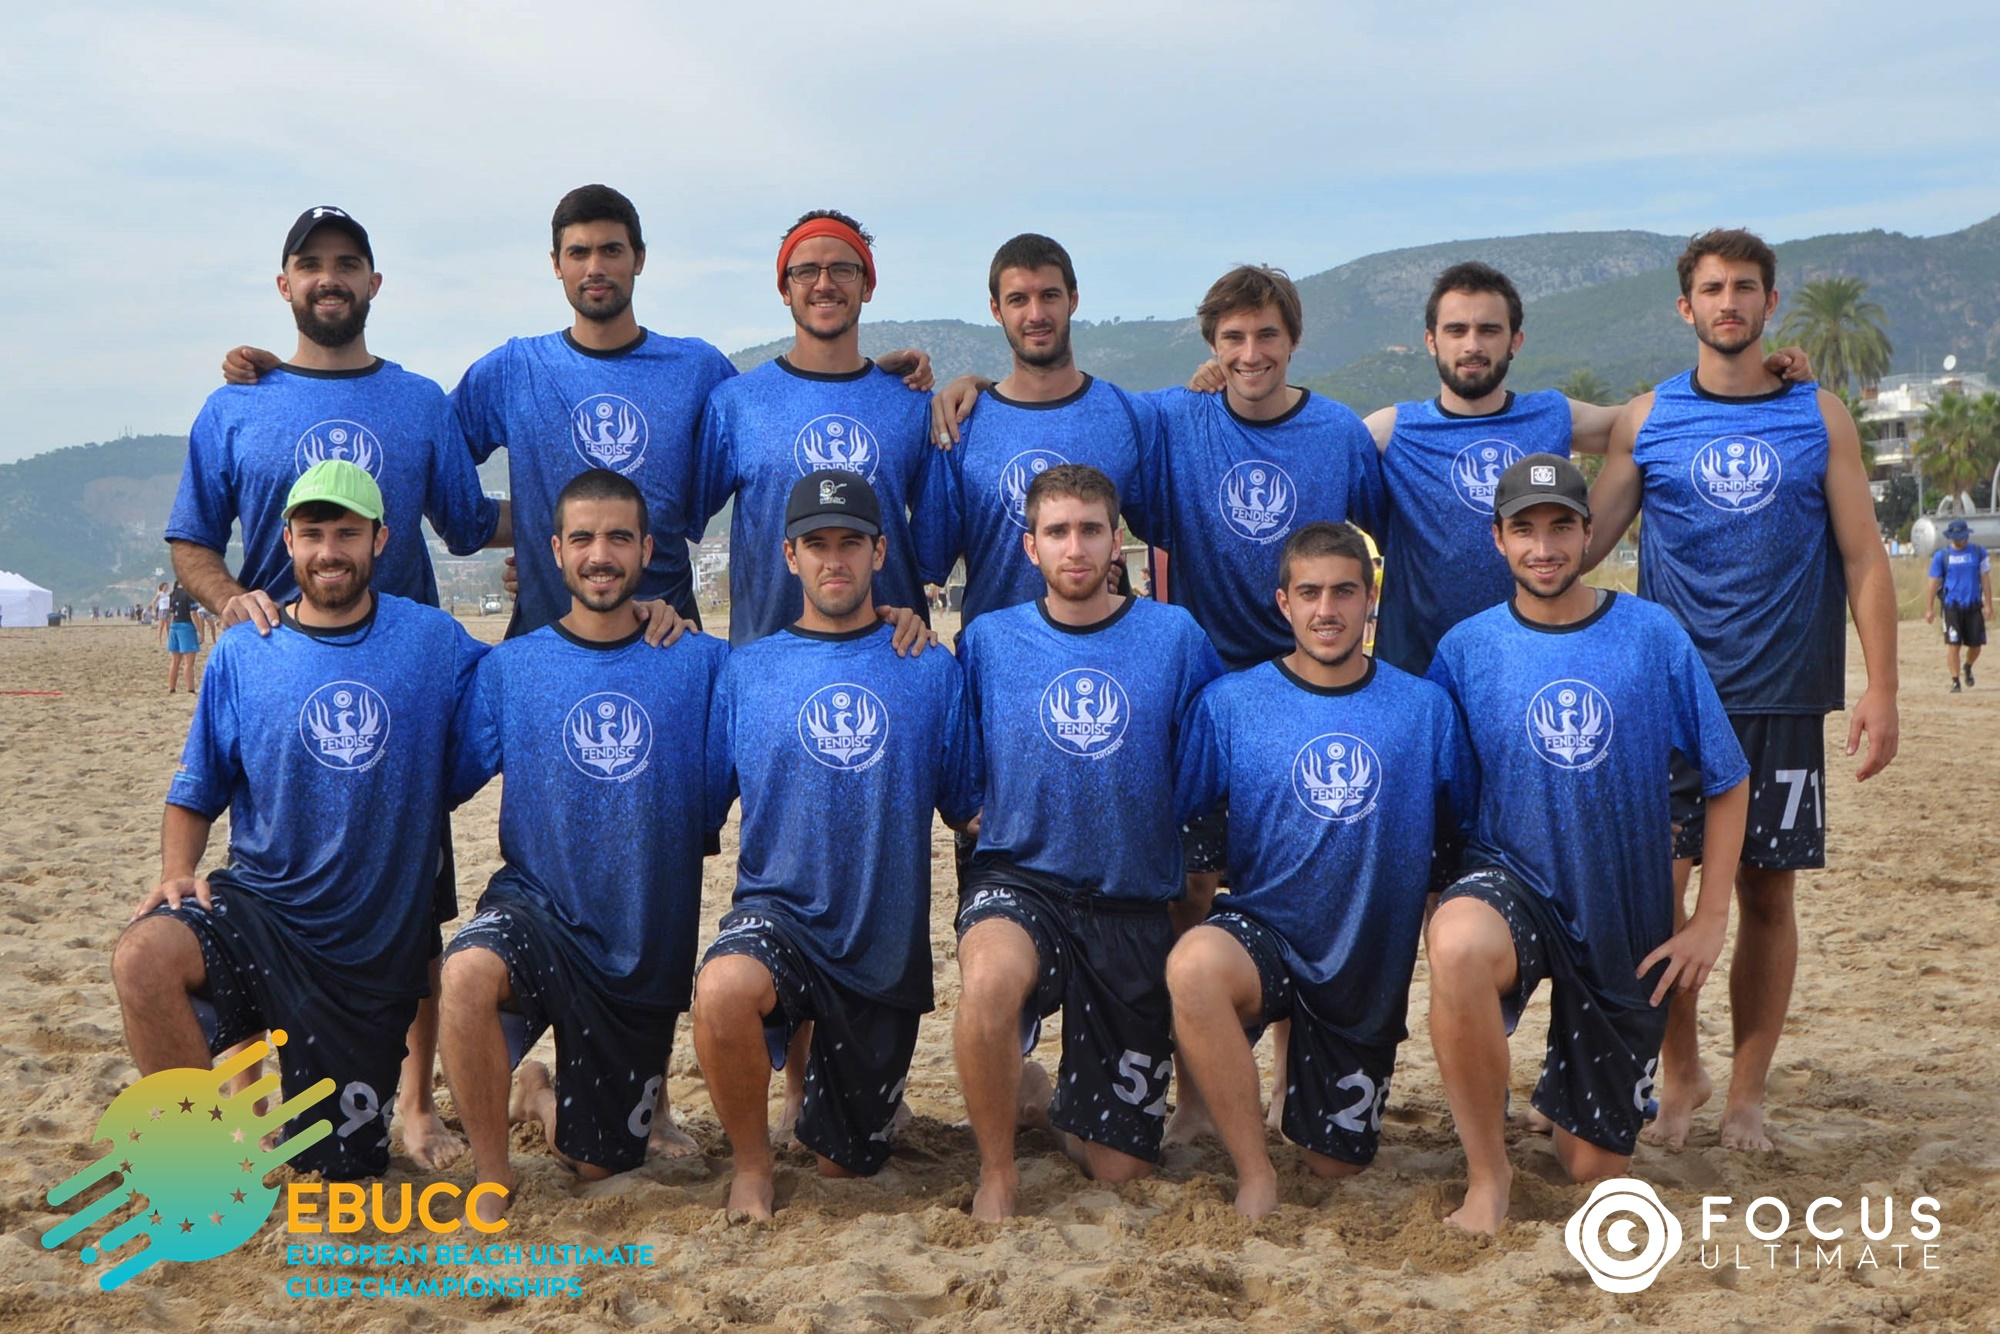 Team picture of Fendisc Men